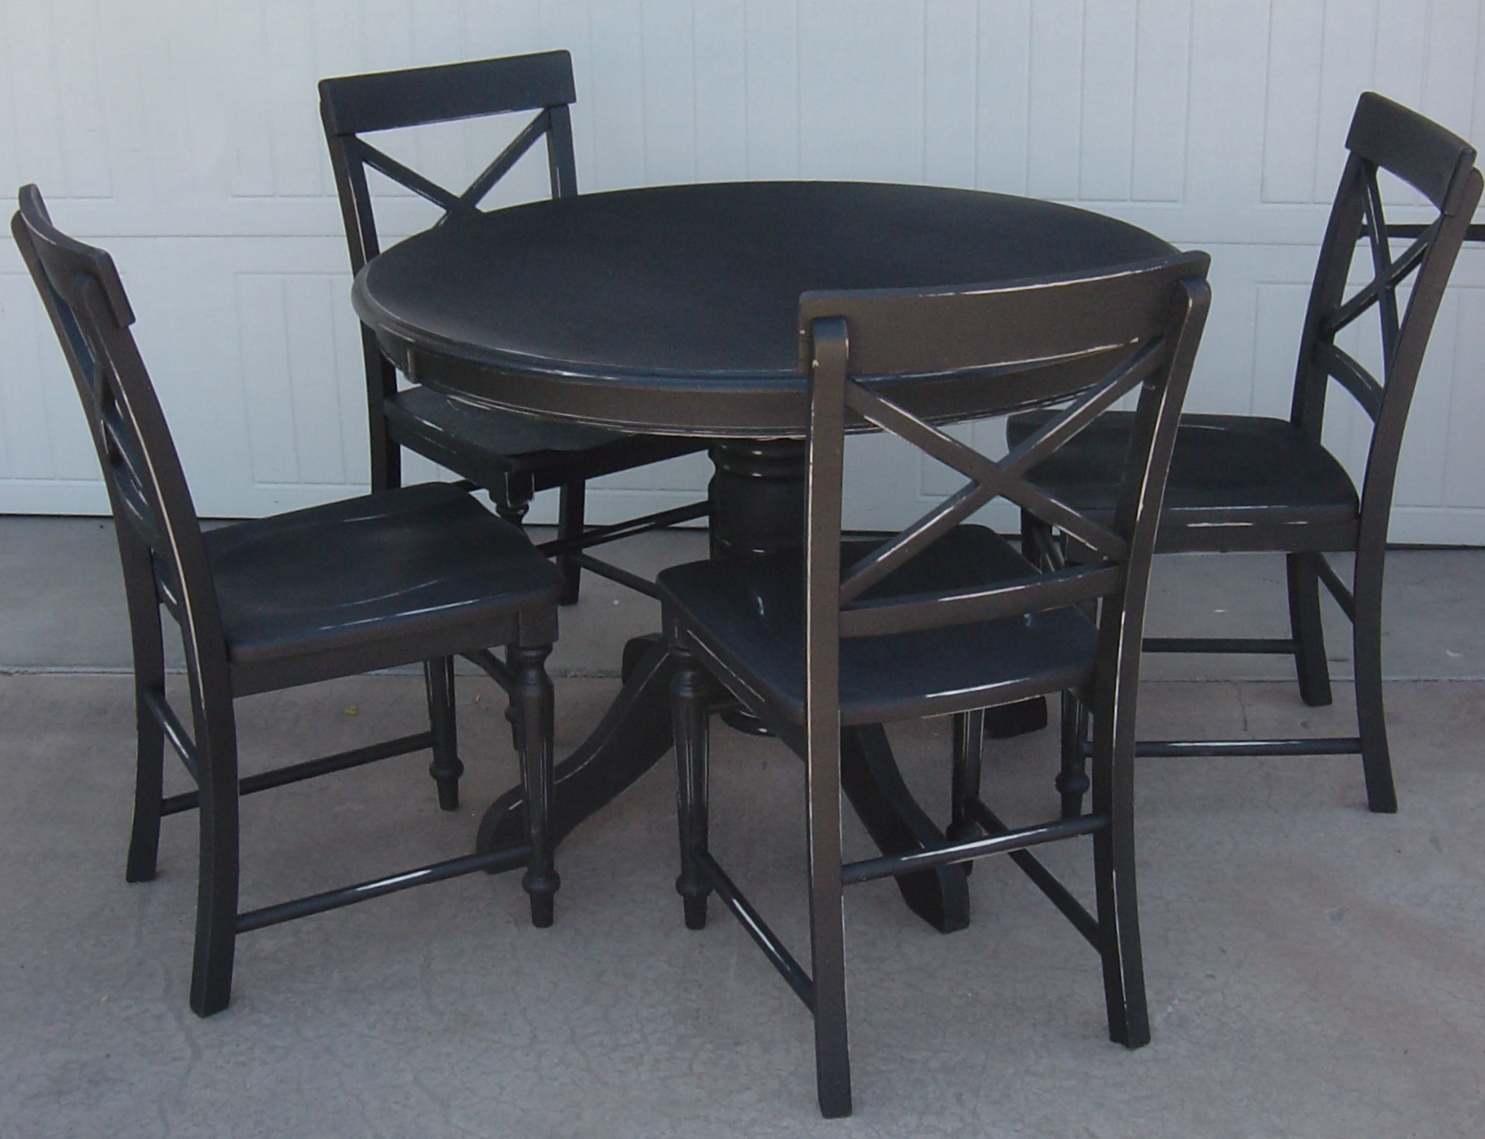 Pier One Kitchen Tables The Backyard Boutique By Five To  : DSC08339 from chipoosh.com size 1485 x 1139 jpeg 447kB